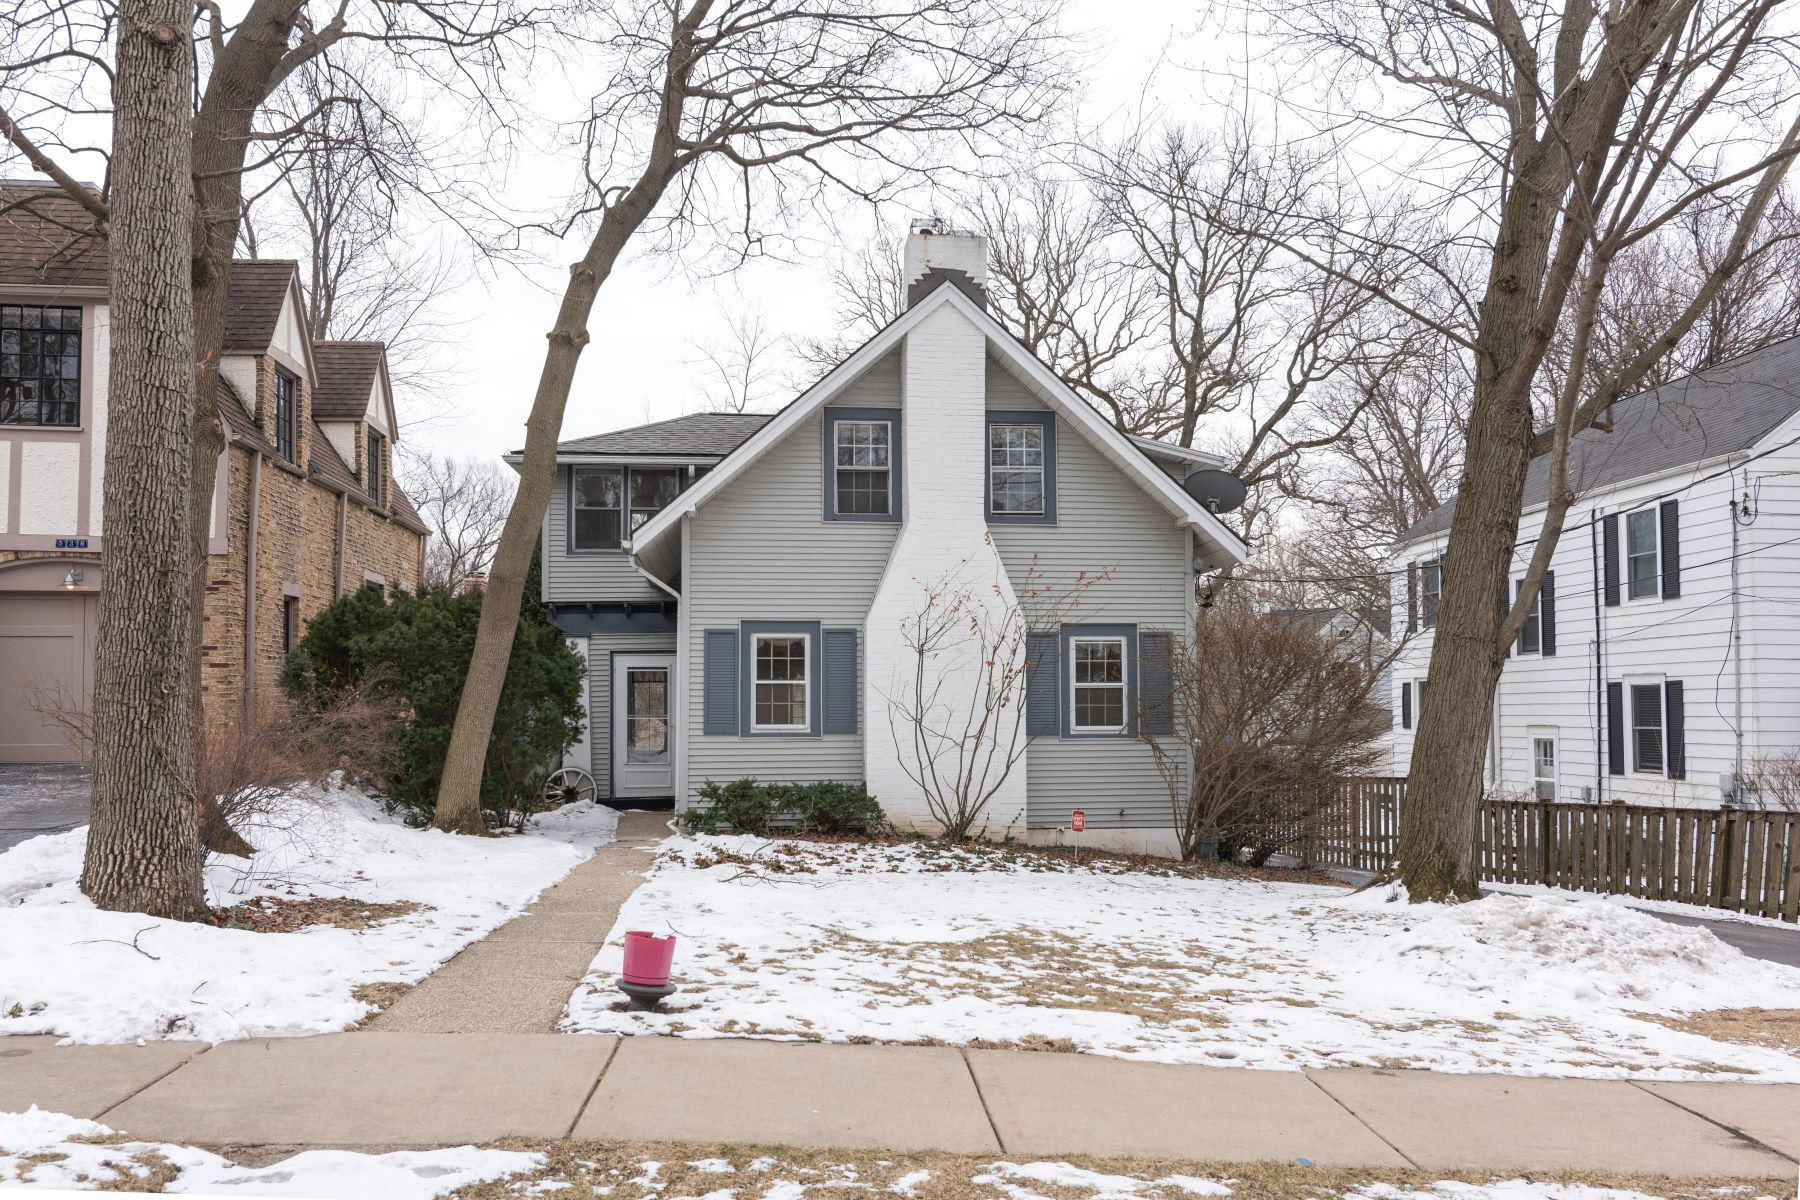 Single Family Home for Active at Charming Home 540 Woodlawn Avenue Glencoe, Illinois 60022 United States